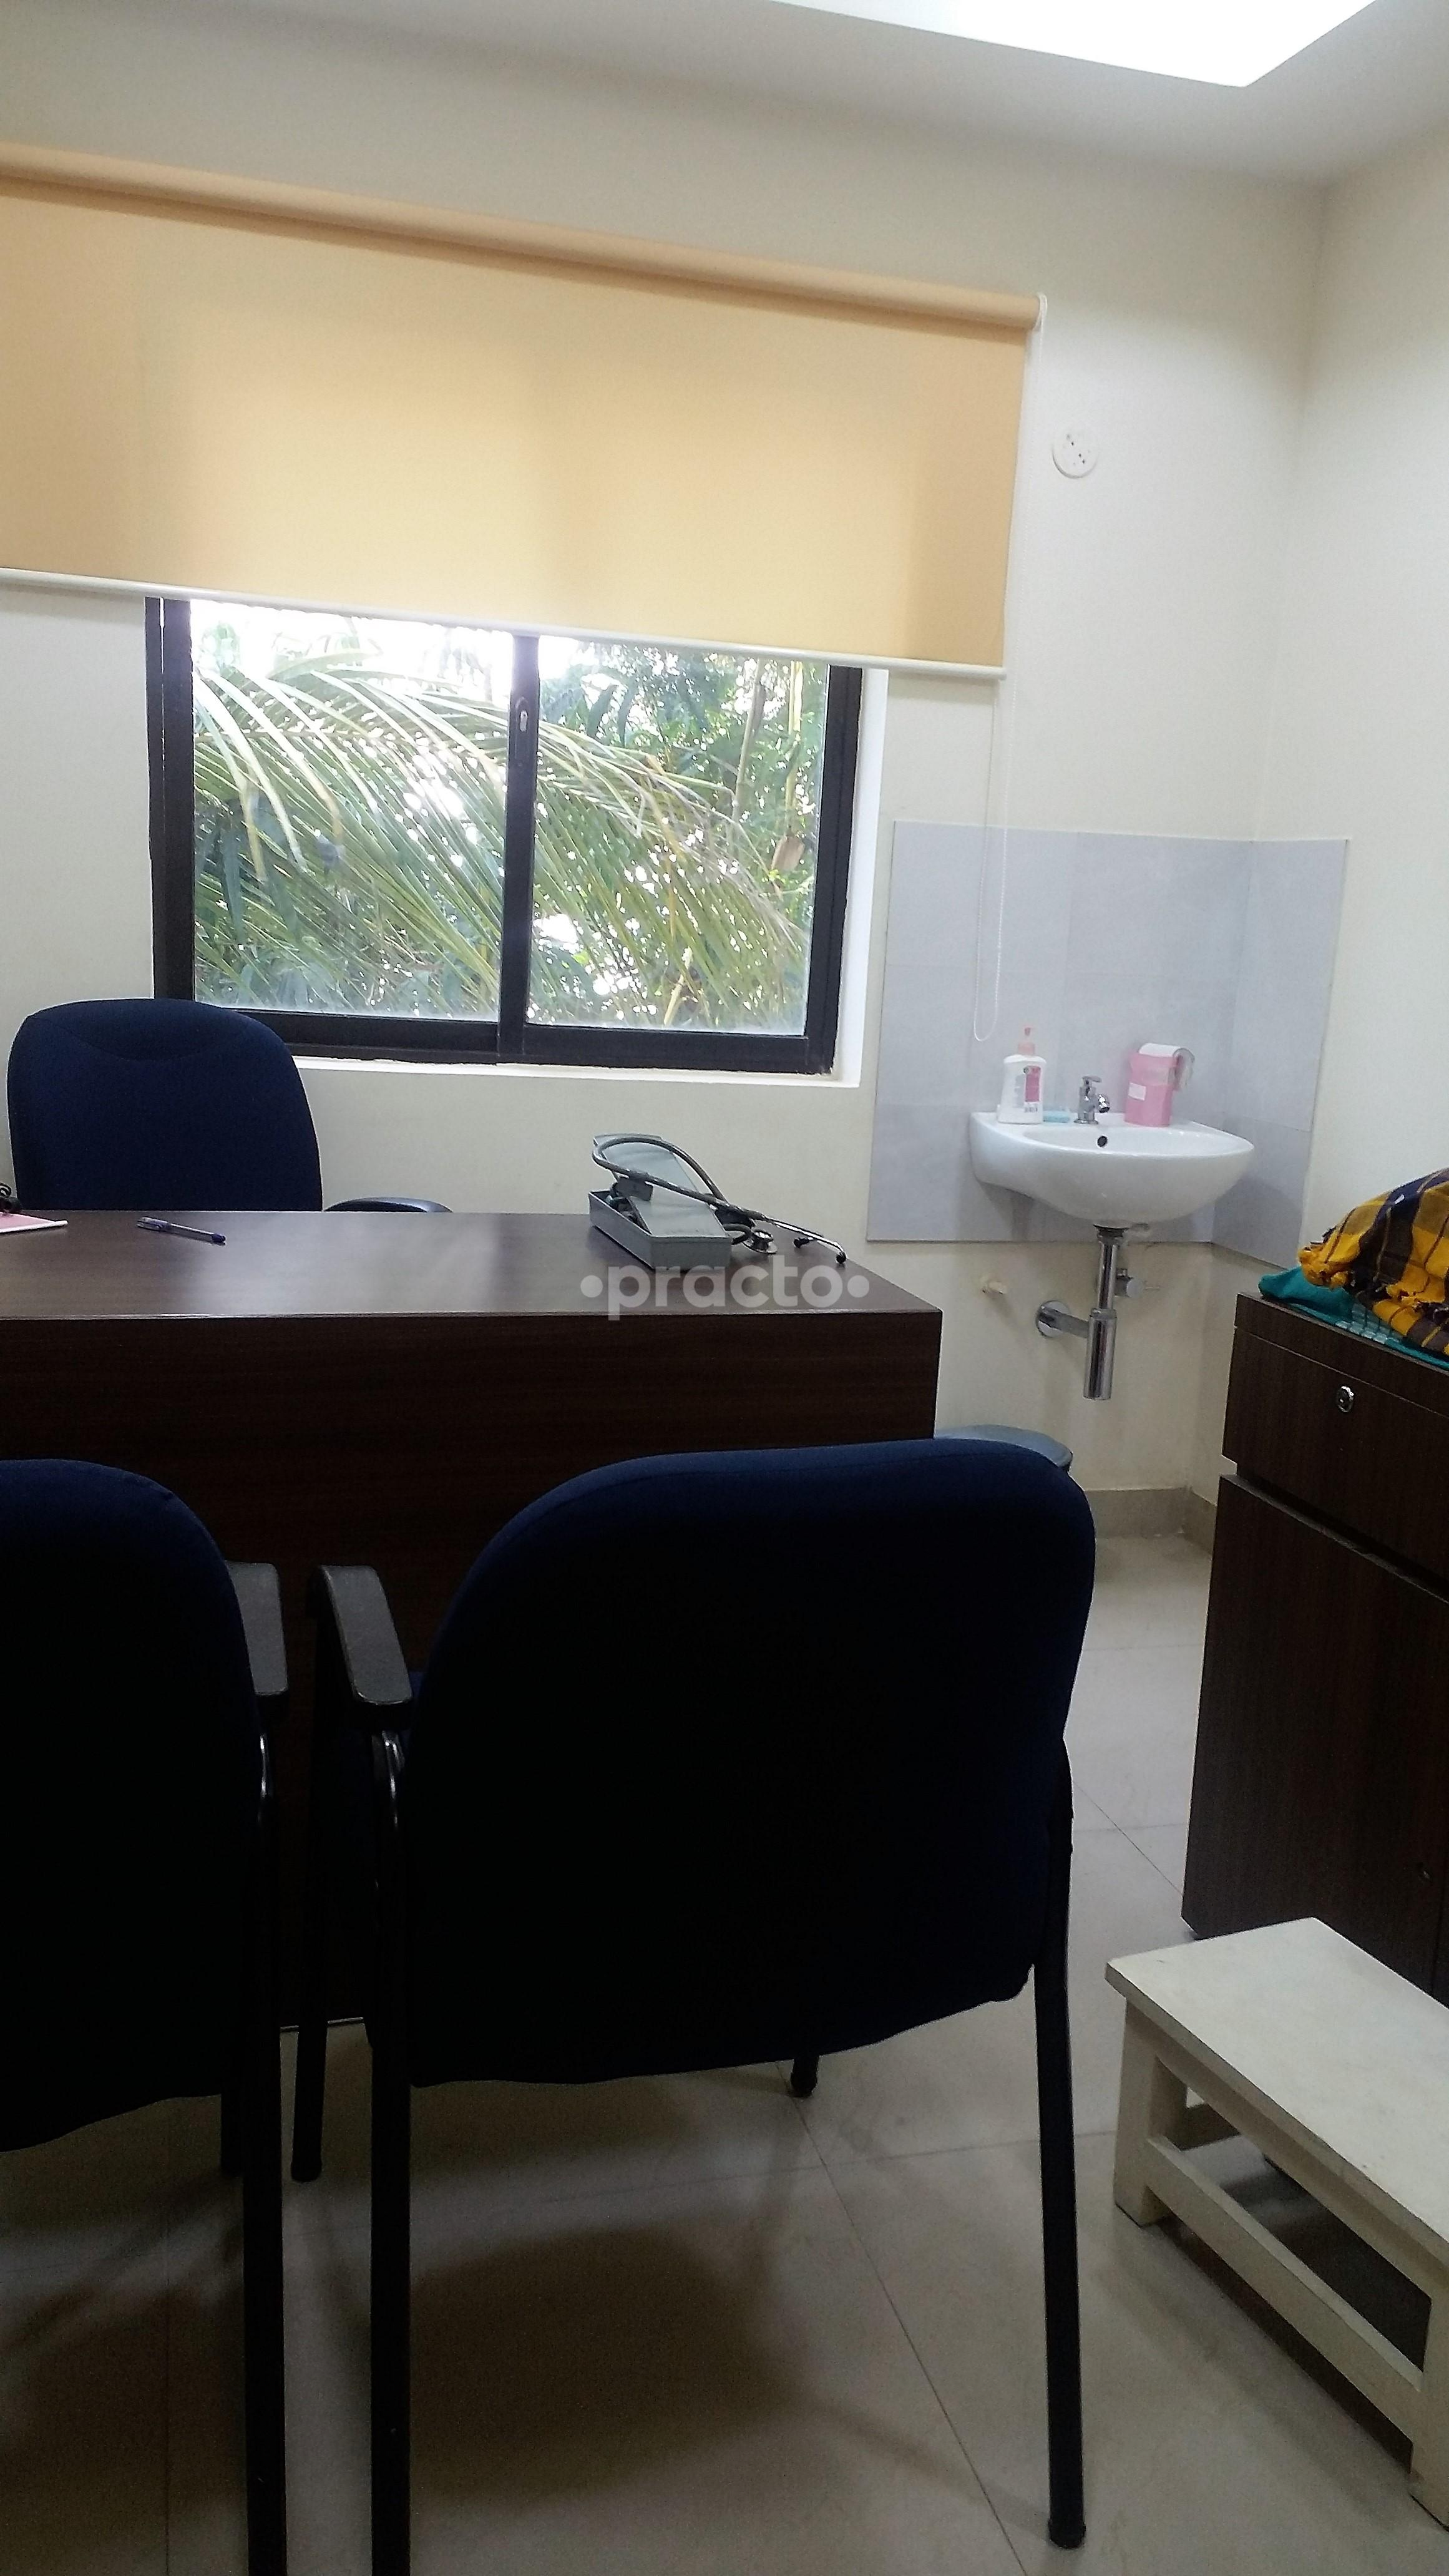 Lady Psychiatrists in Chennai Instant Appointment Booking View